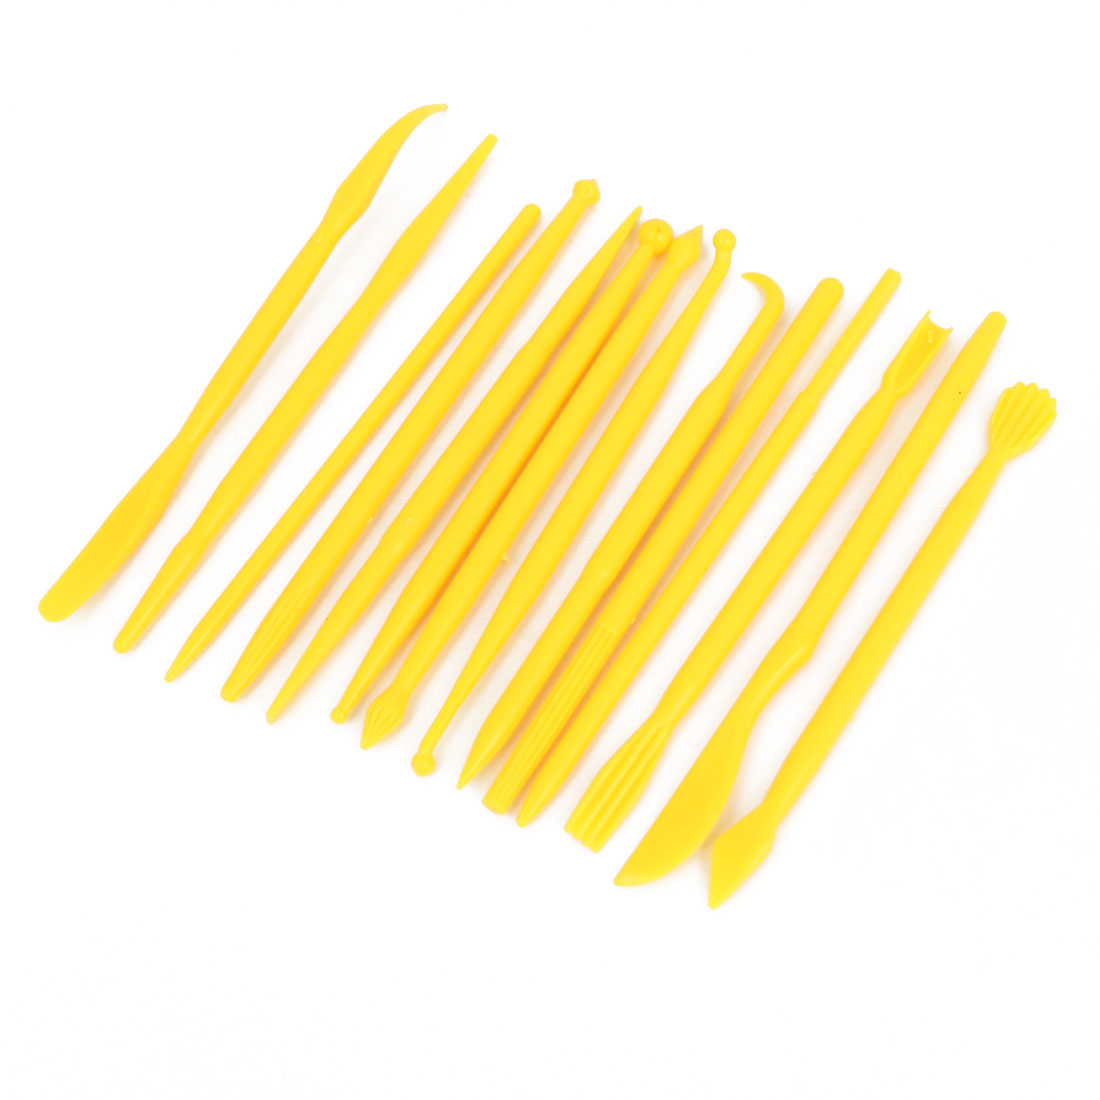 Yellow Fondant Gum Paste Cake Decorating Flower Modeling Tools 14 in 1 Set